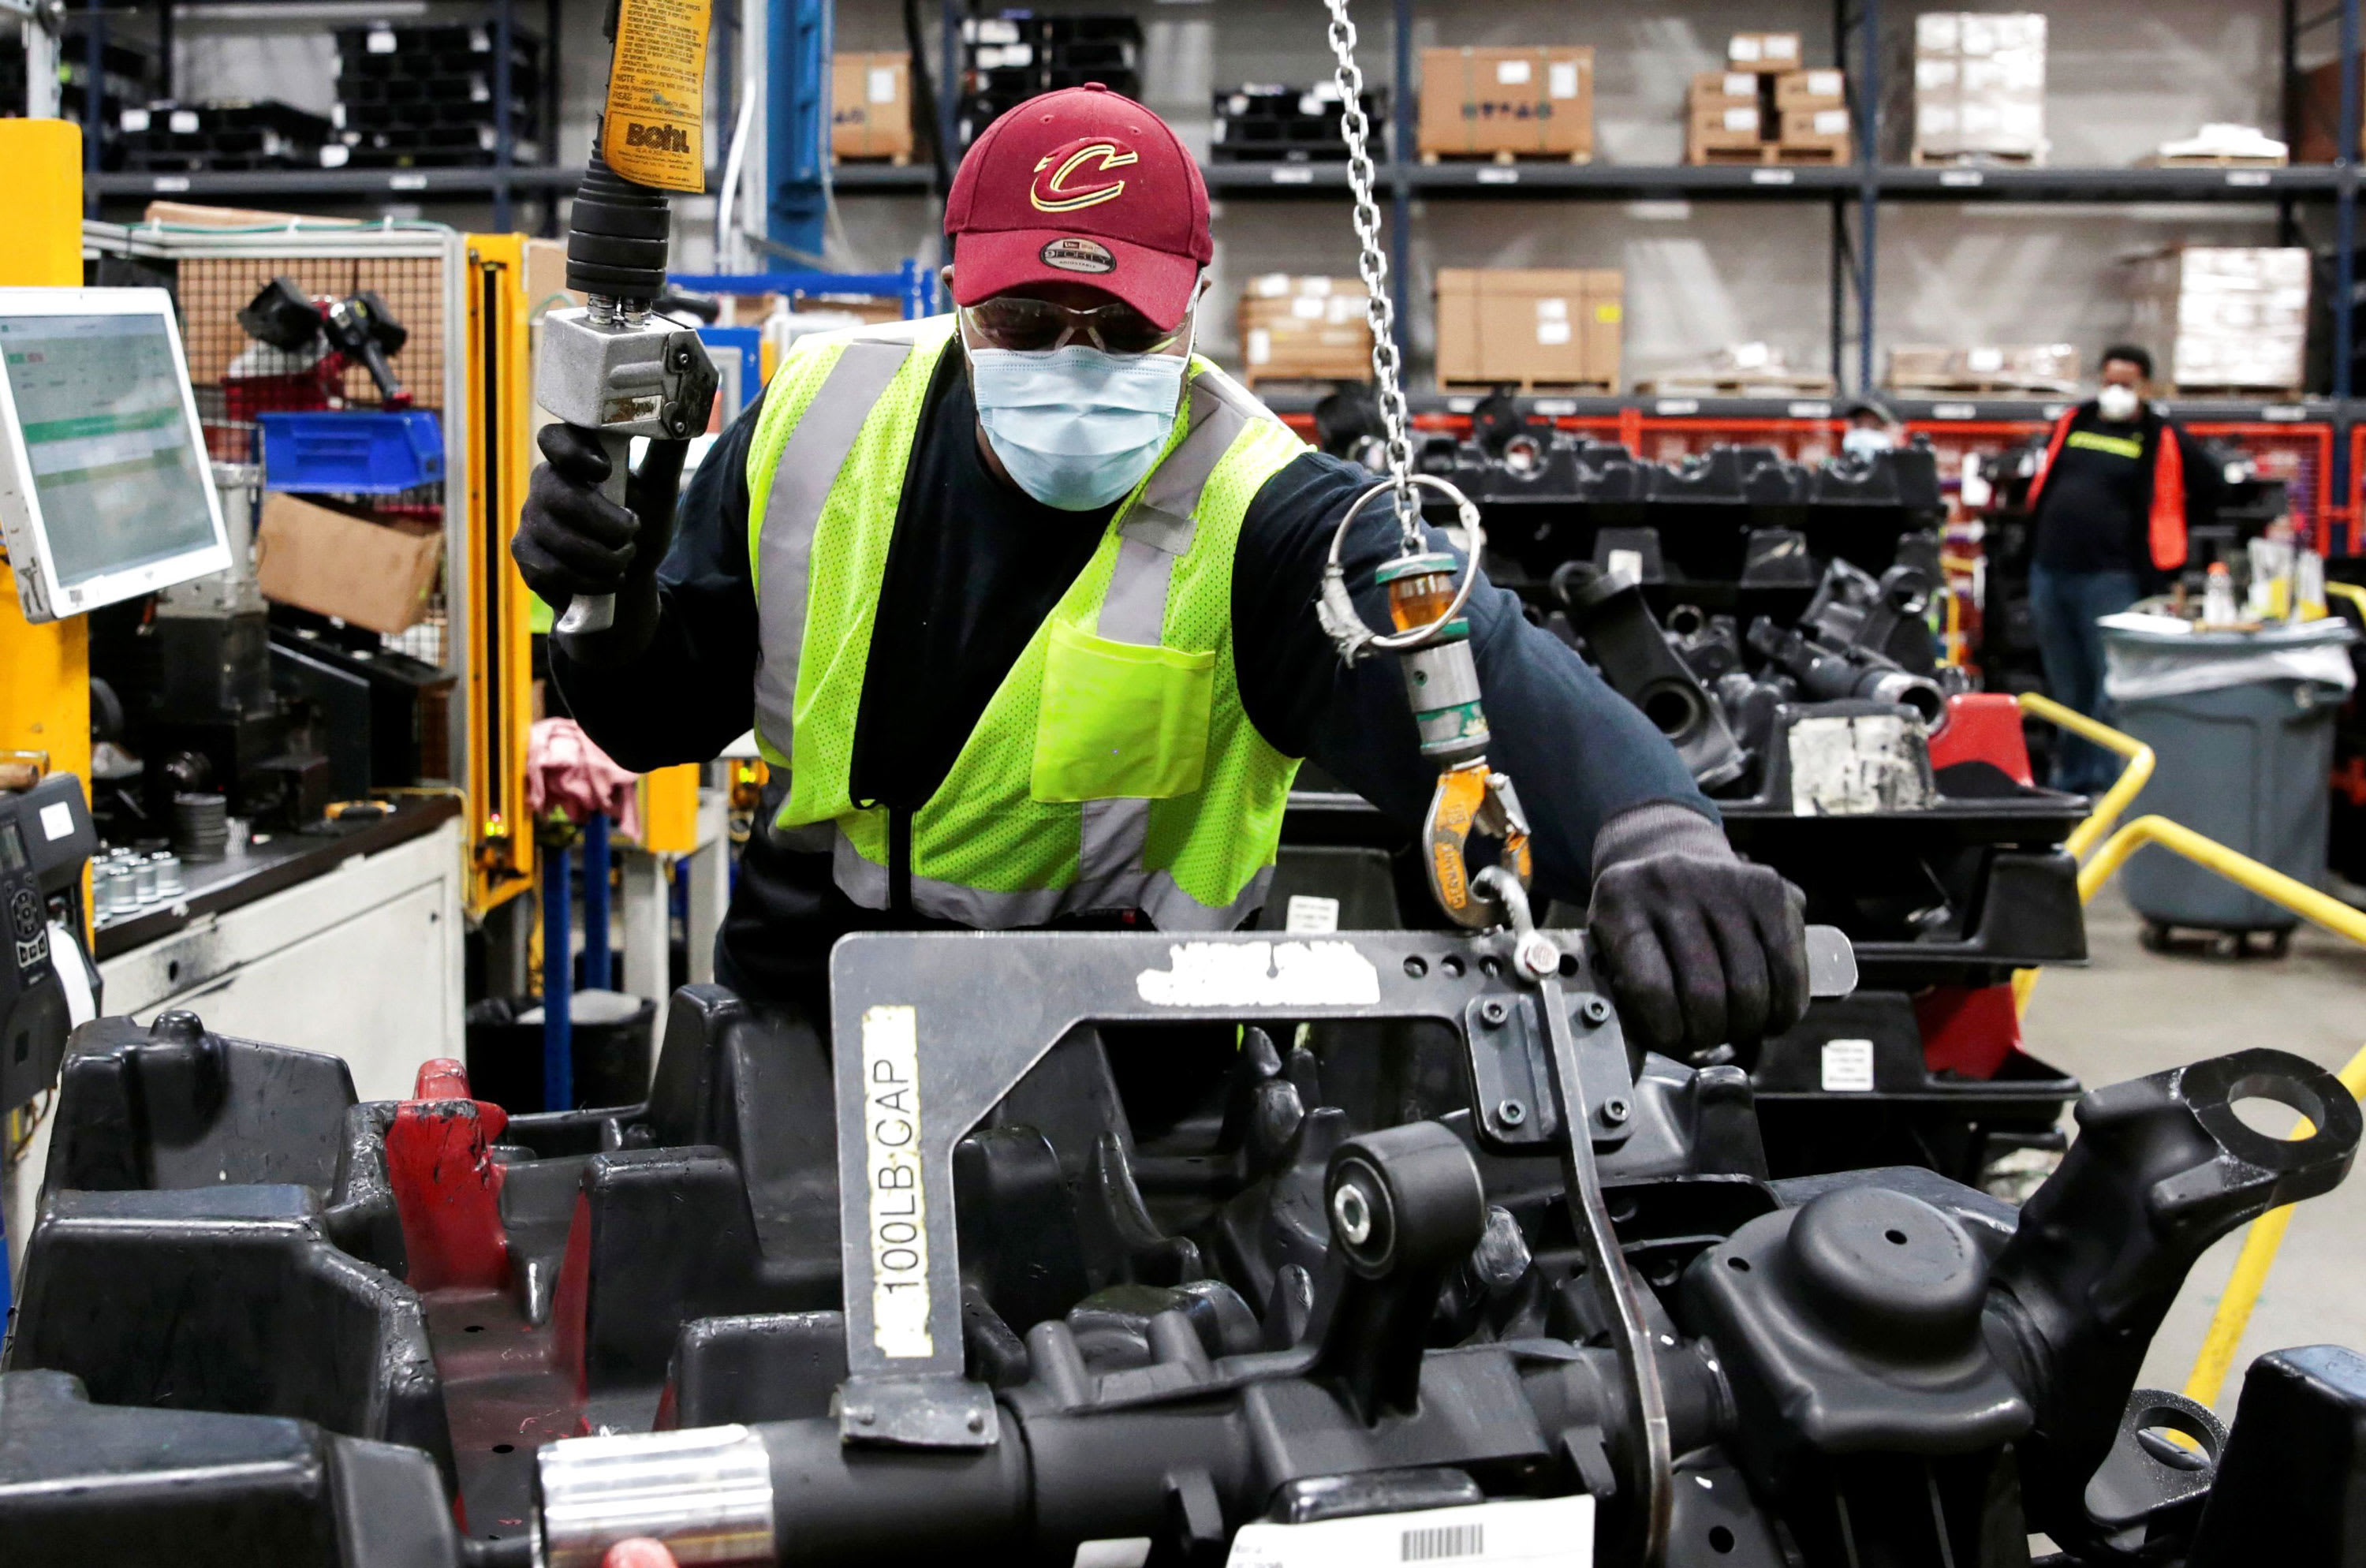 U.S. GDP booms at 33.1% rate in Q3, better than expected